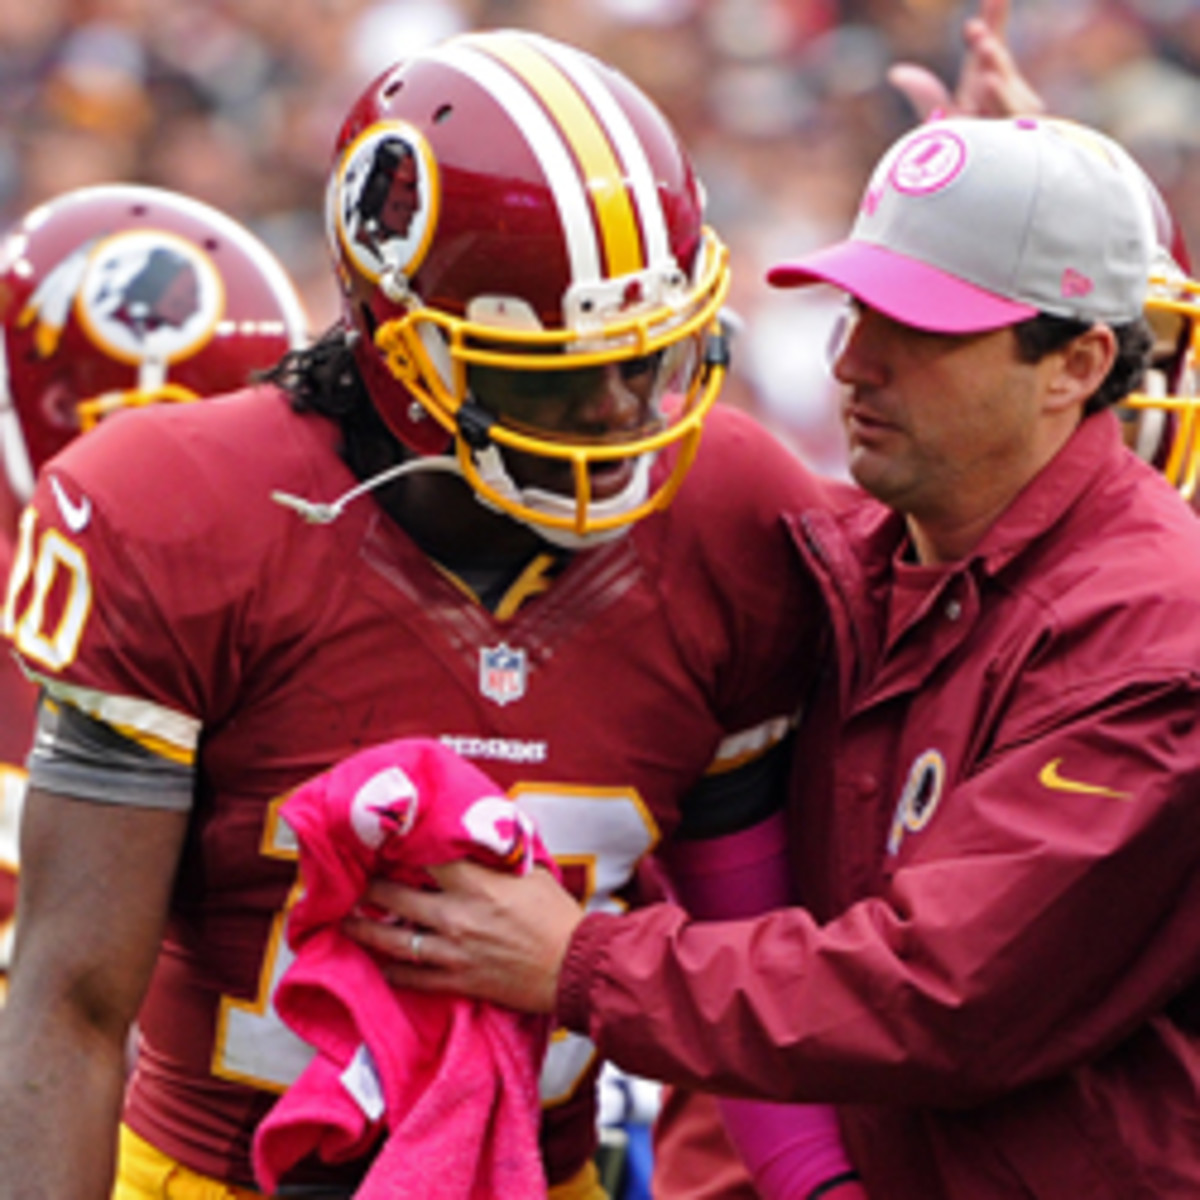 Robert Griffin III has practiced twice after suffering a concussion. (Patrick Smith/Getty Images)